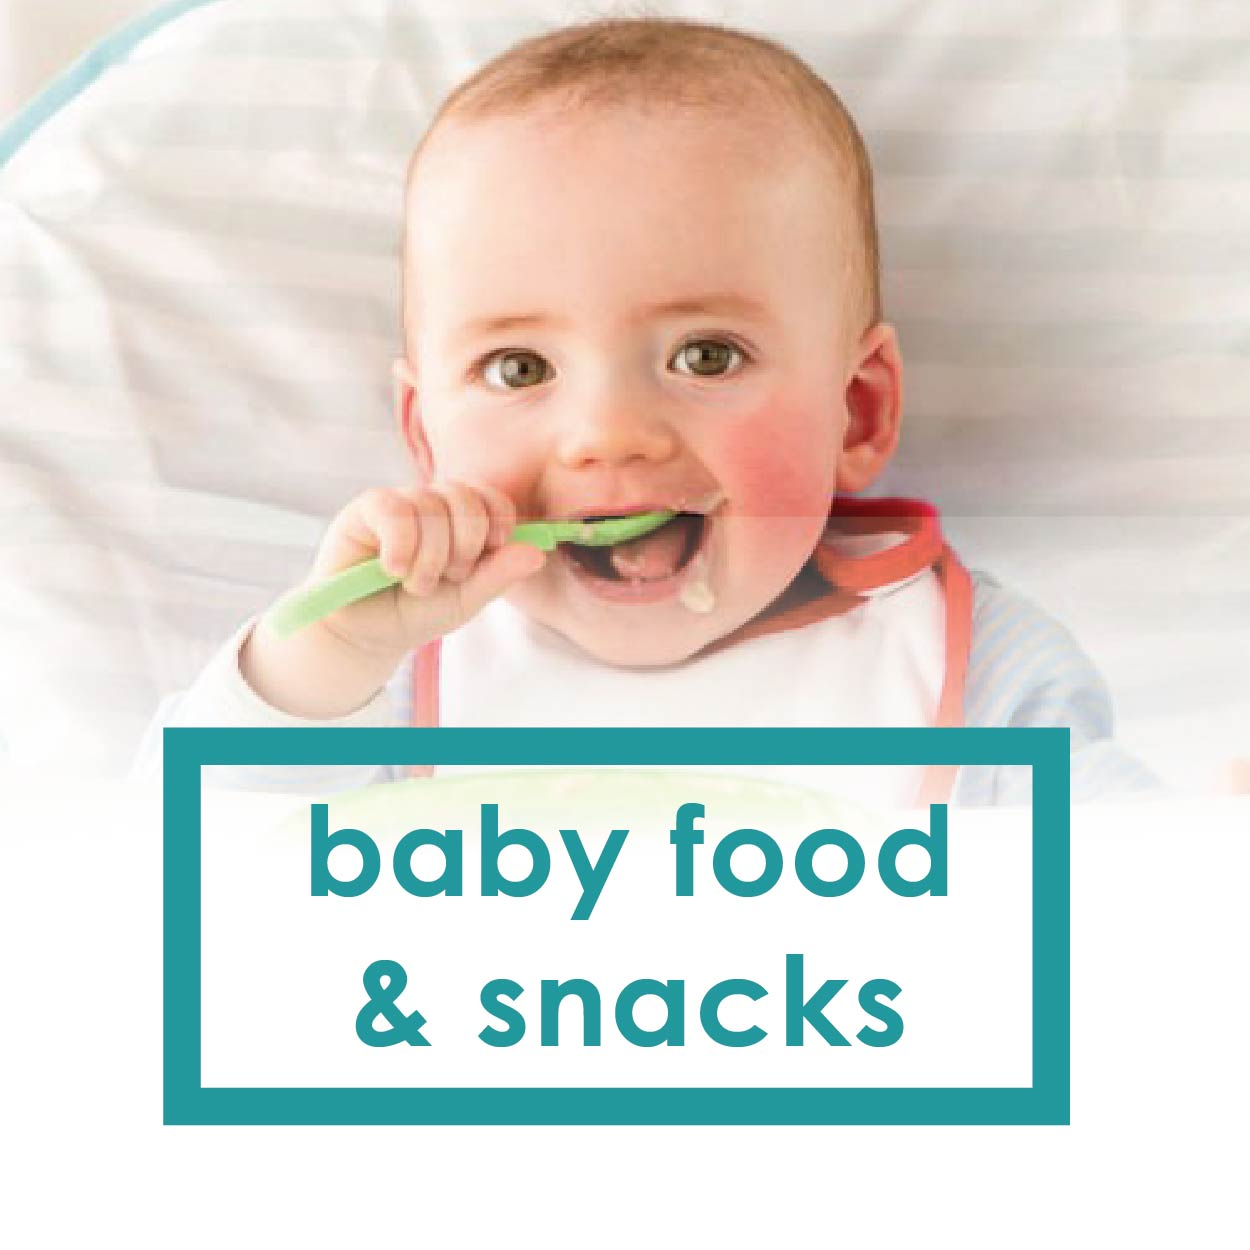 Baby Food & Snacks